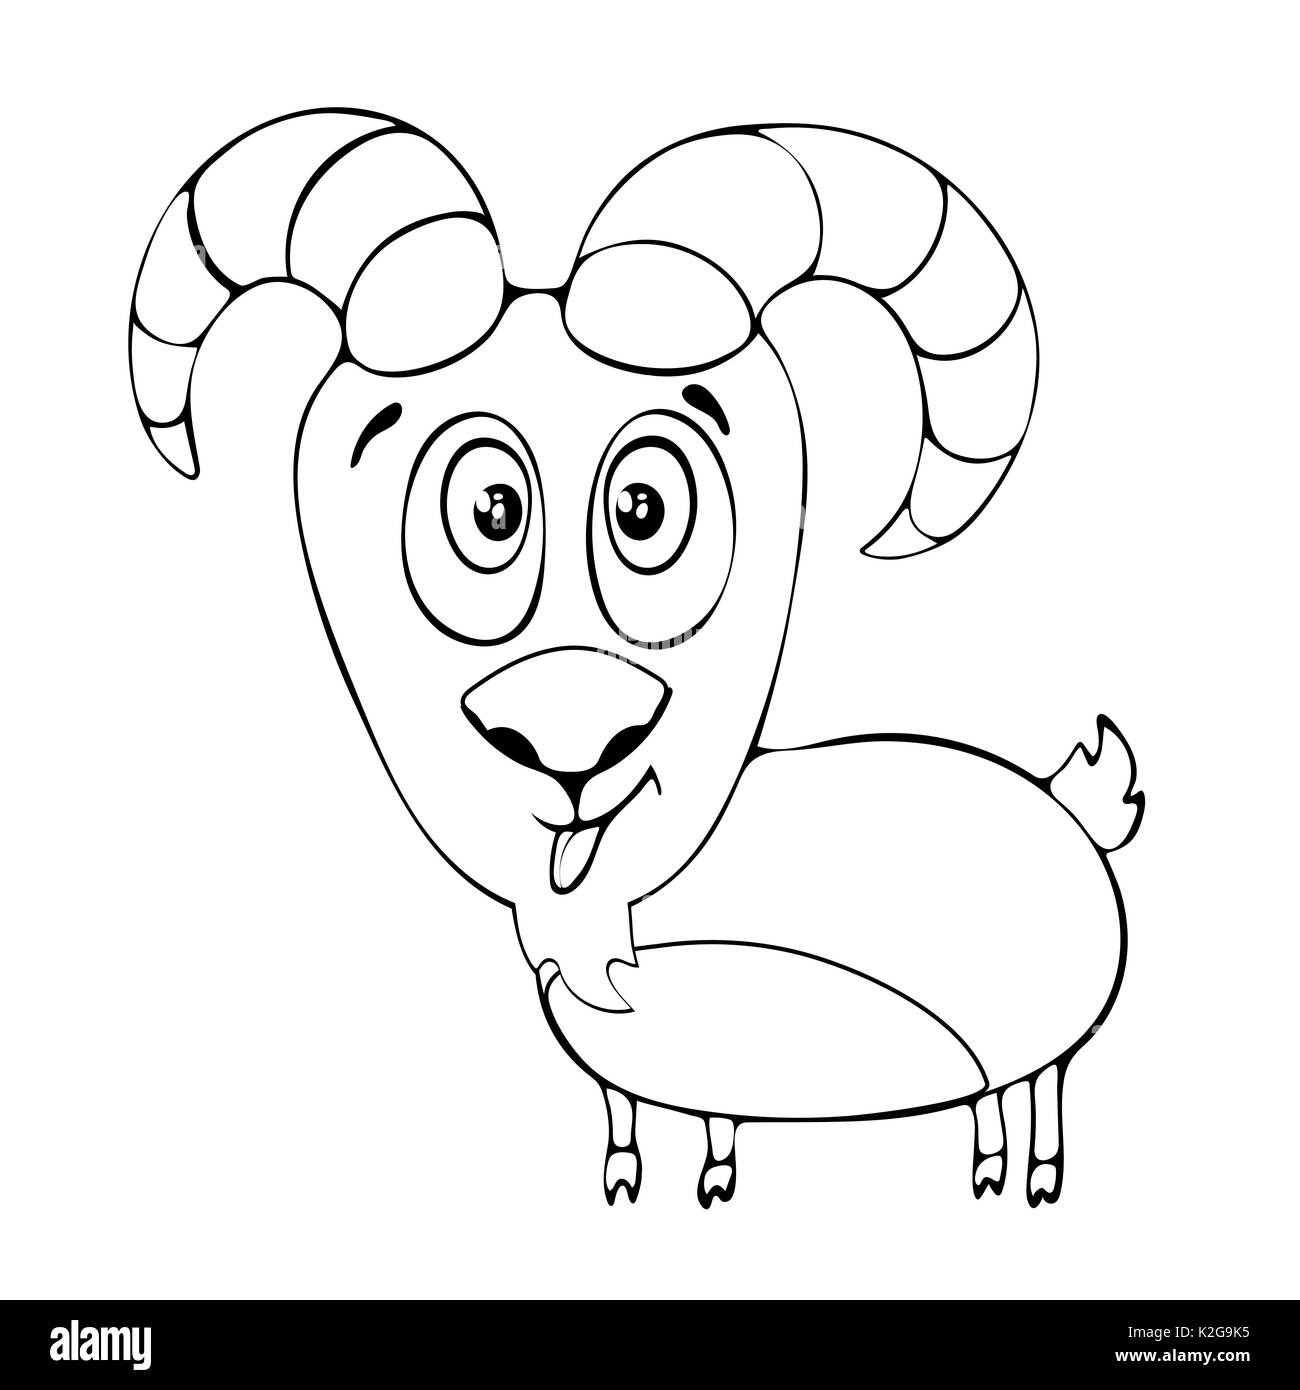 Cartoon Funny Goat For Coloring Book Isolated On White Background